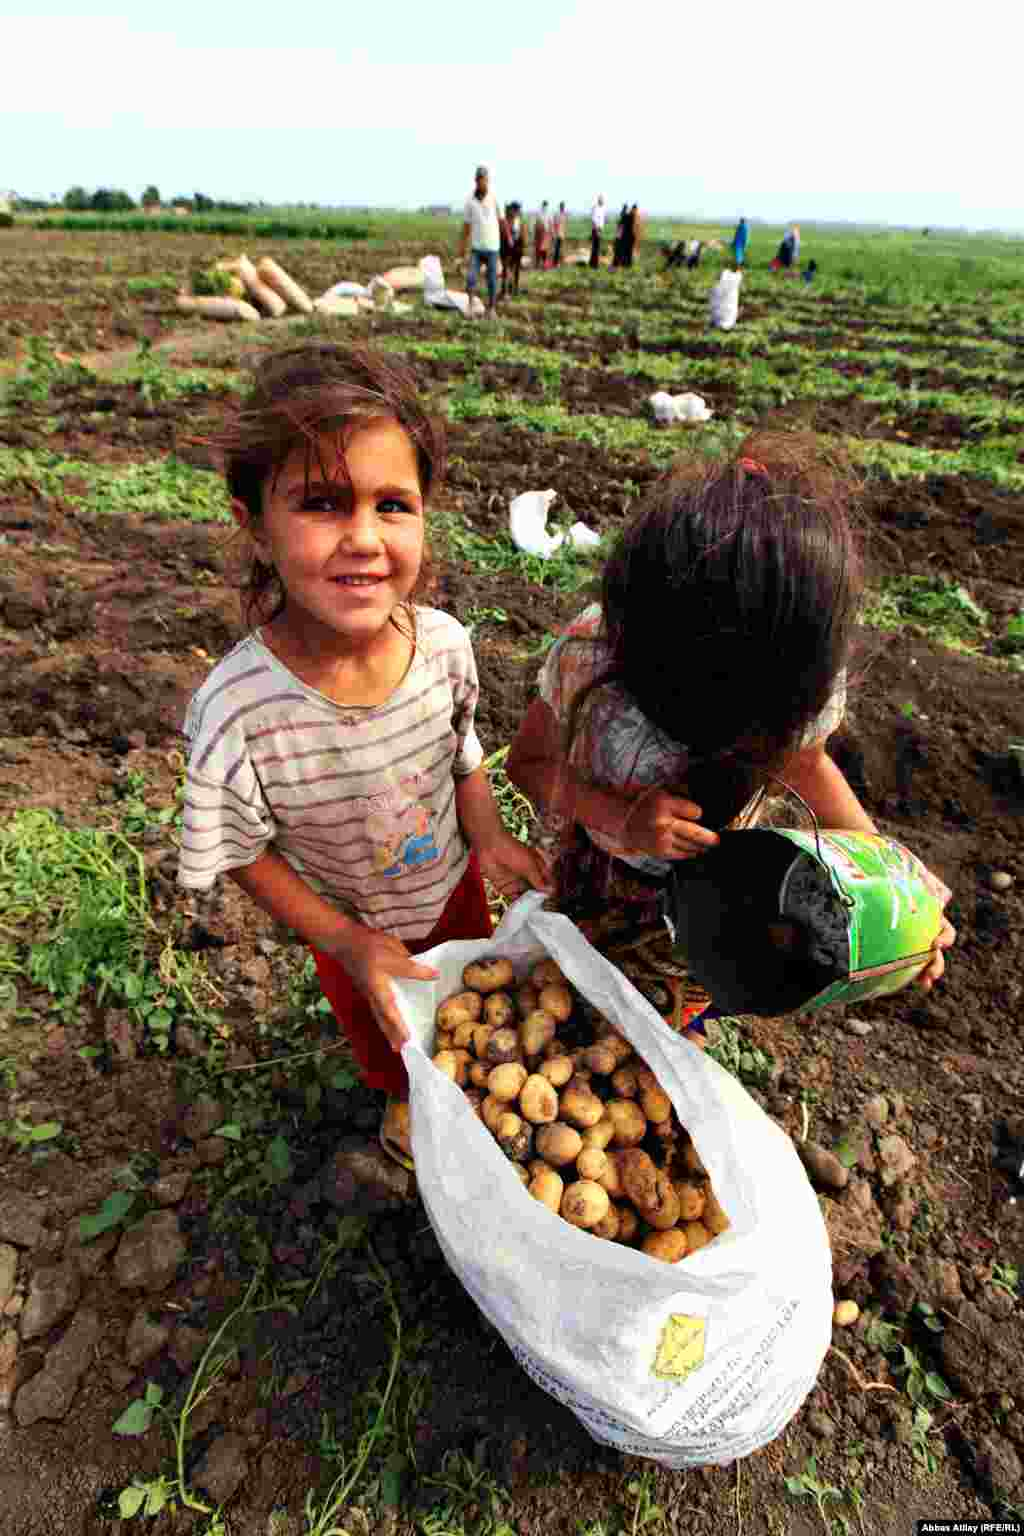 Children help their parents with the potato harvest in the village of Jalilabad. The region is more famous for growing limes and tea.